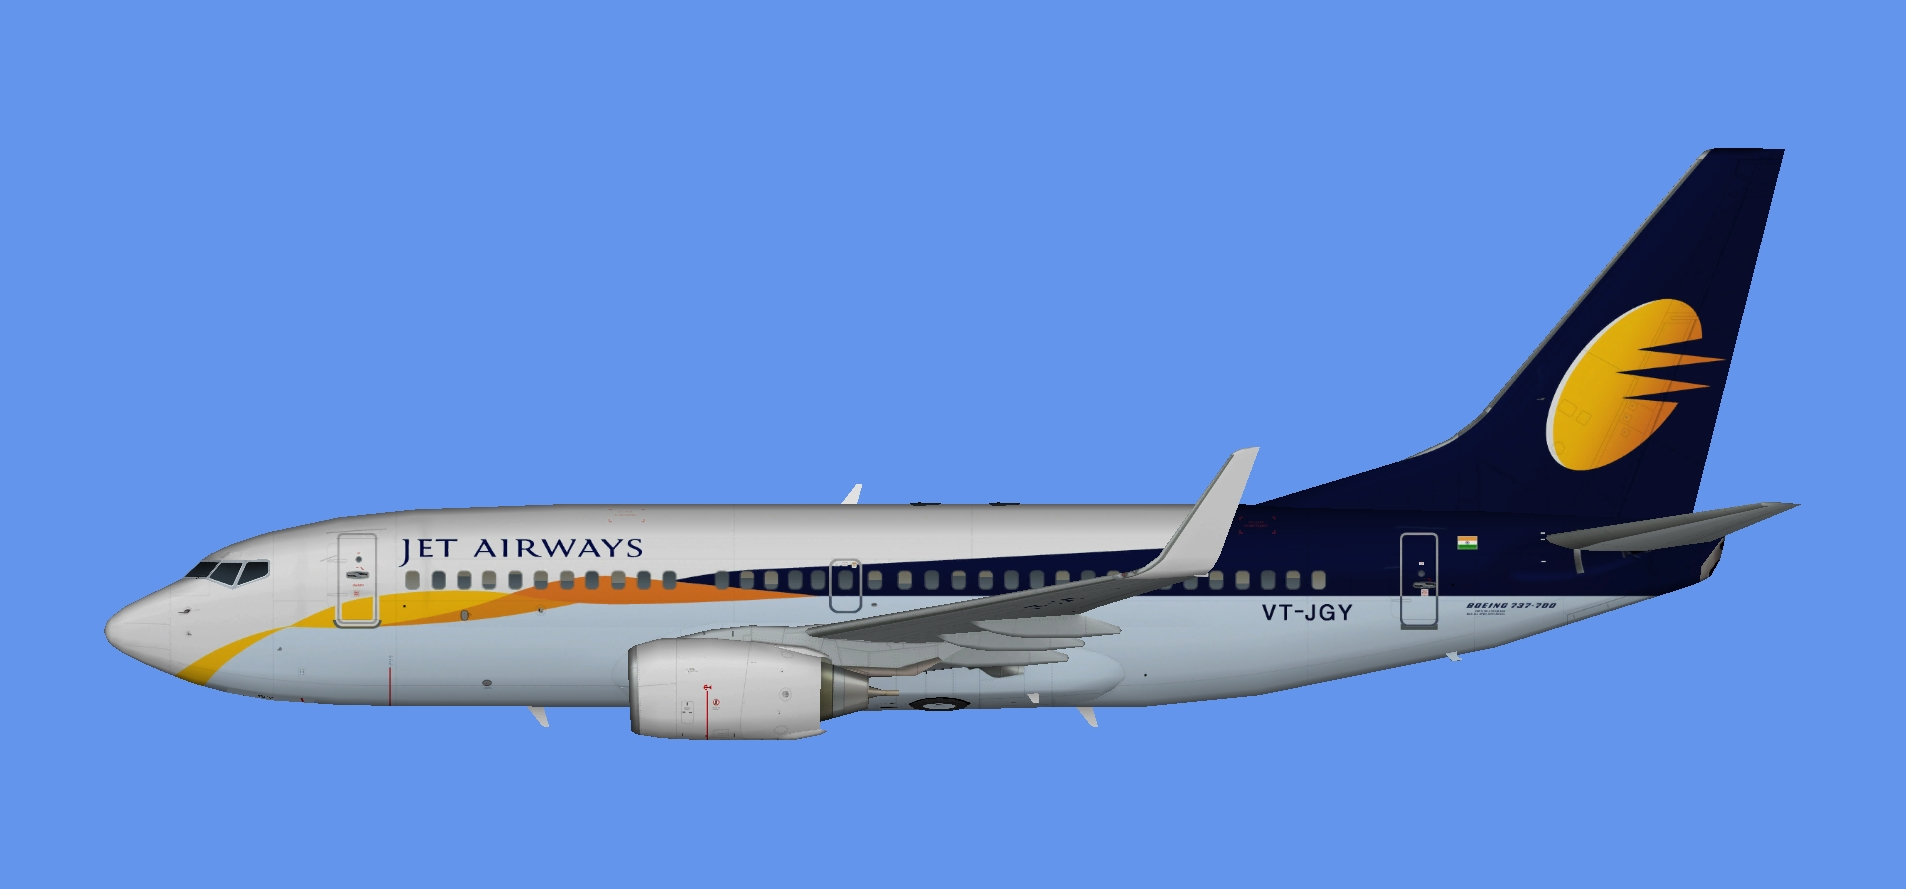 Jet Airways Boeing 737-700w